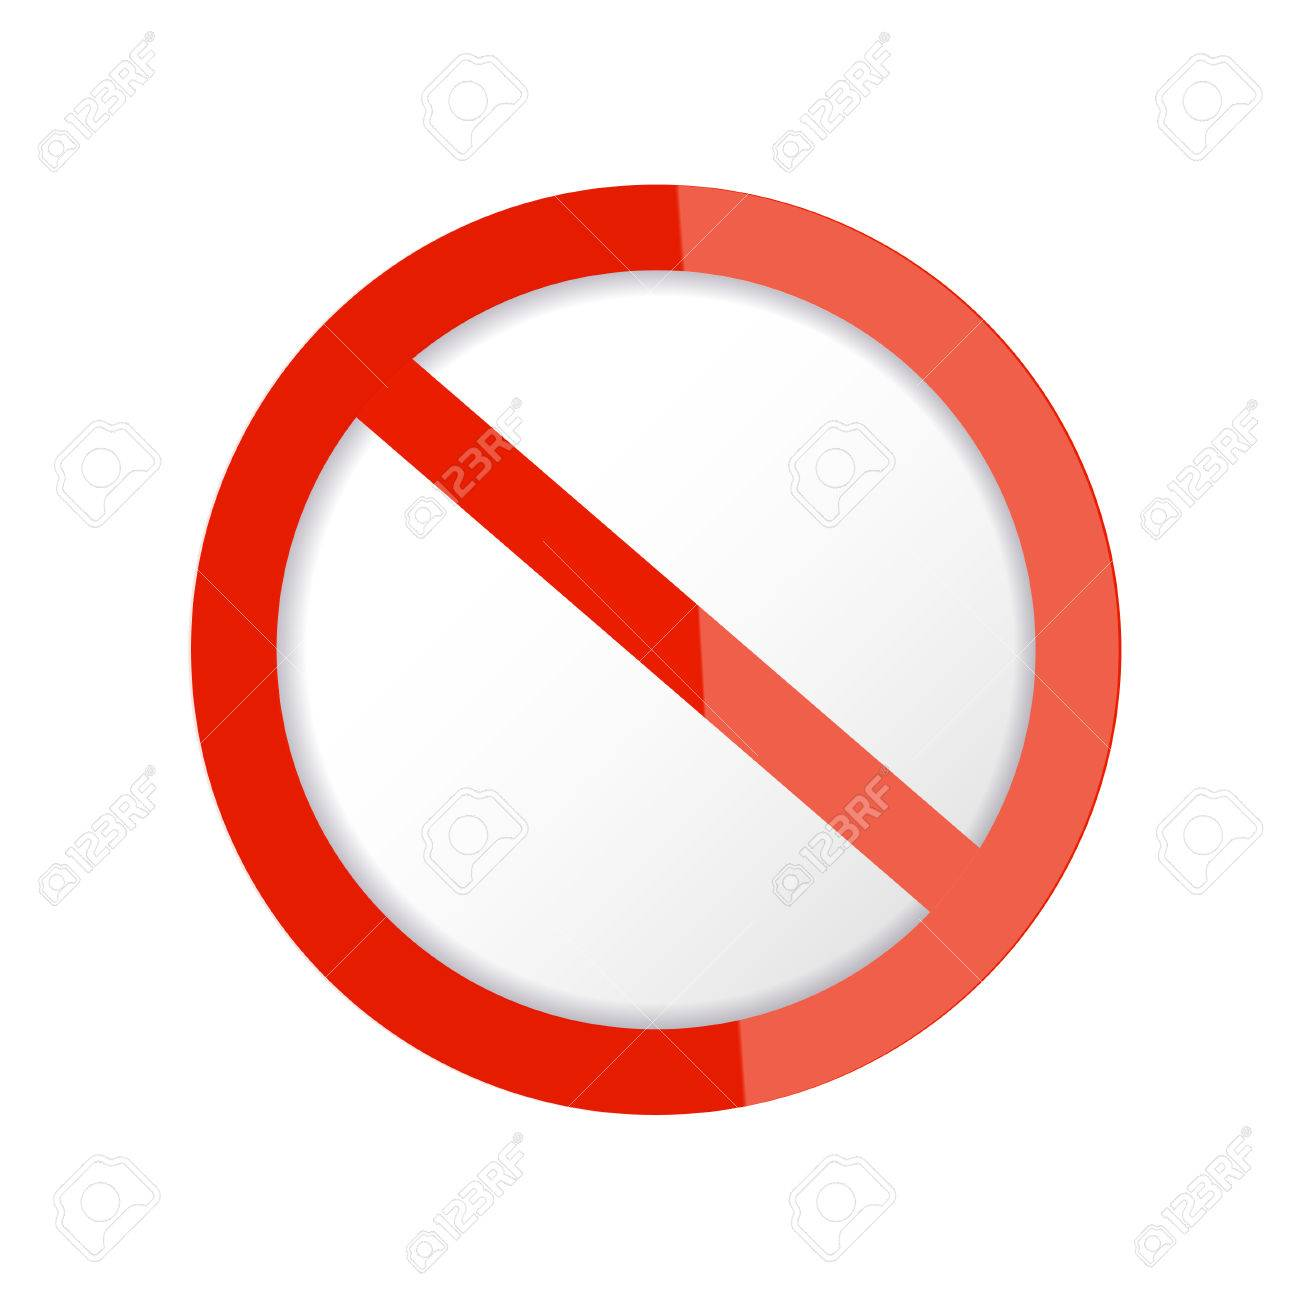 red stop sign vector illustration royalty free cliparts vectors rh 123rf com stop sign vector png stop sign vector free